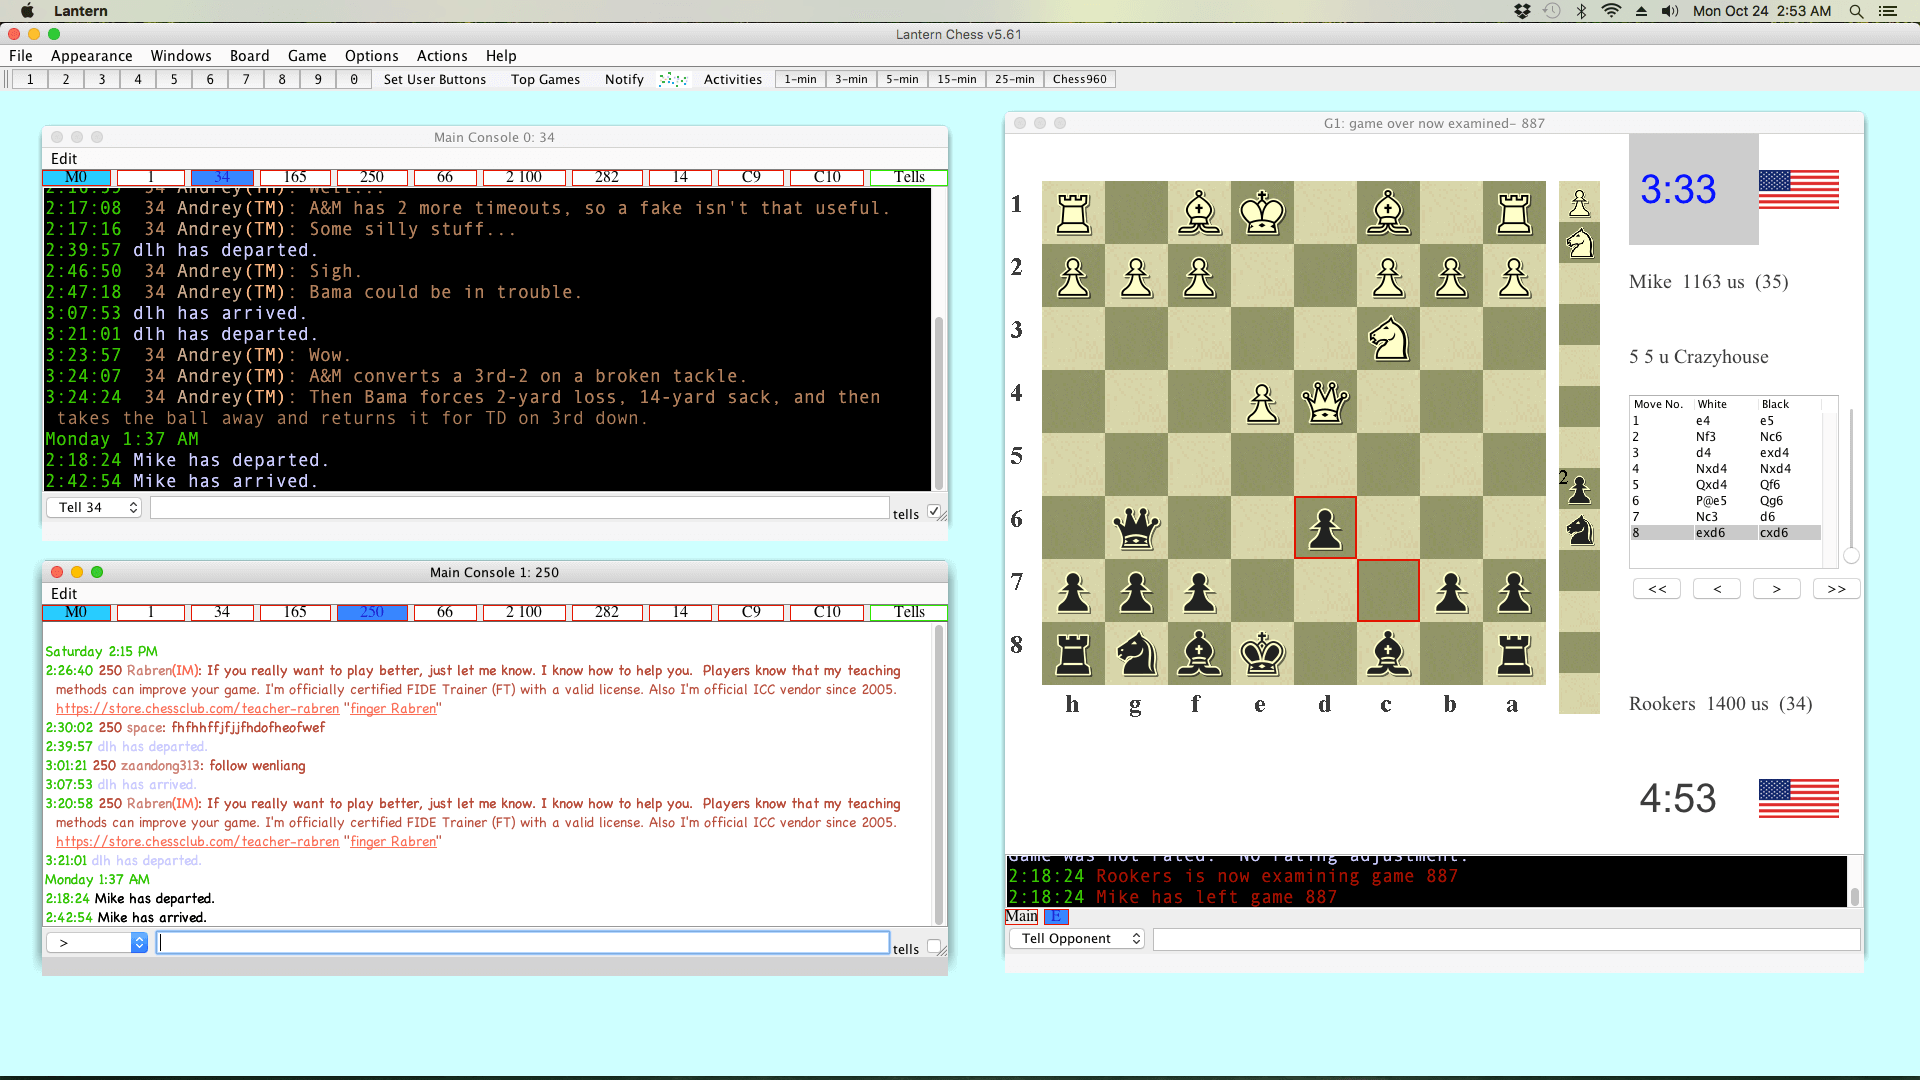 Lantern Chess Interface for Chessclub com